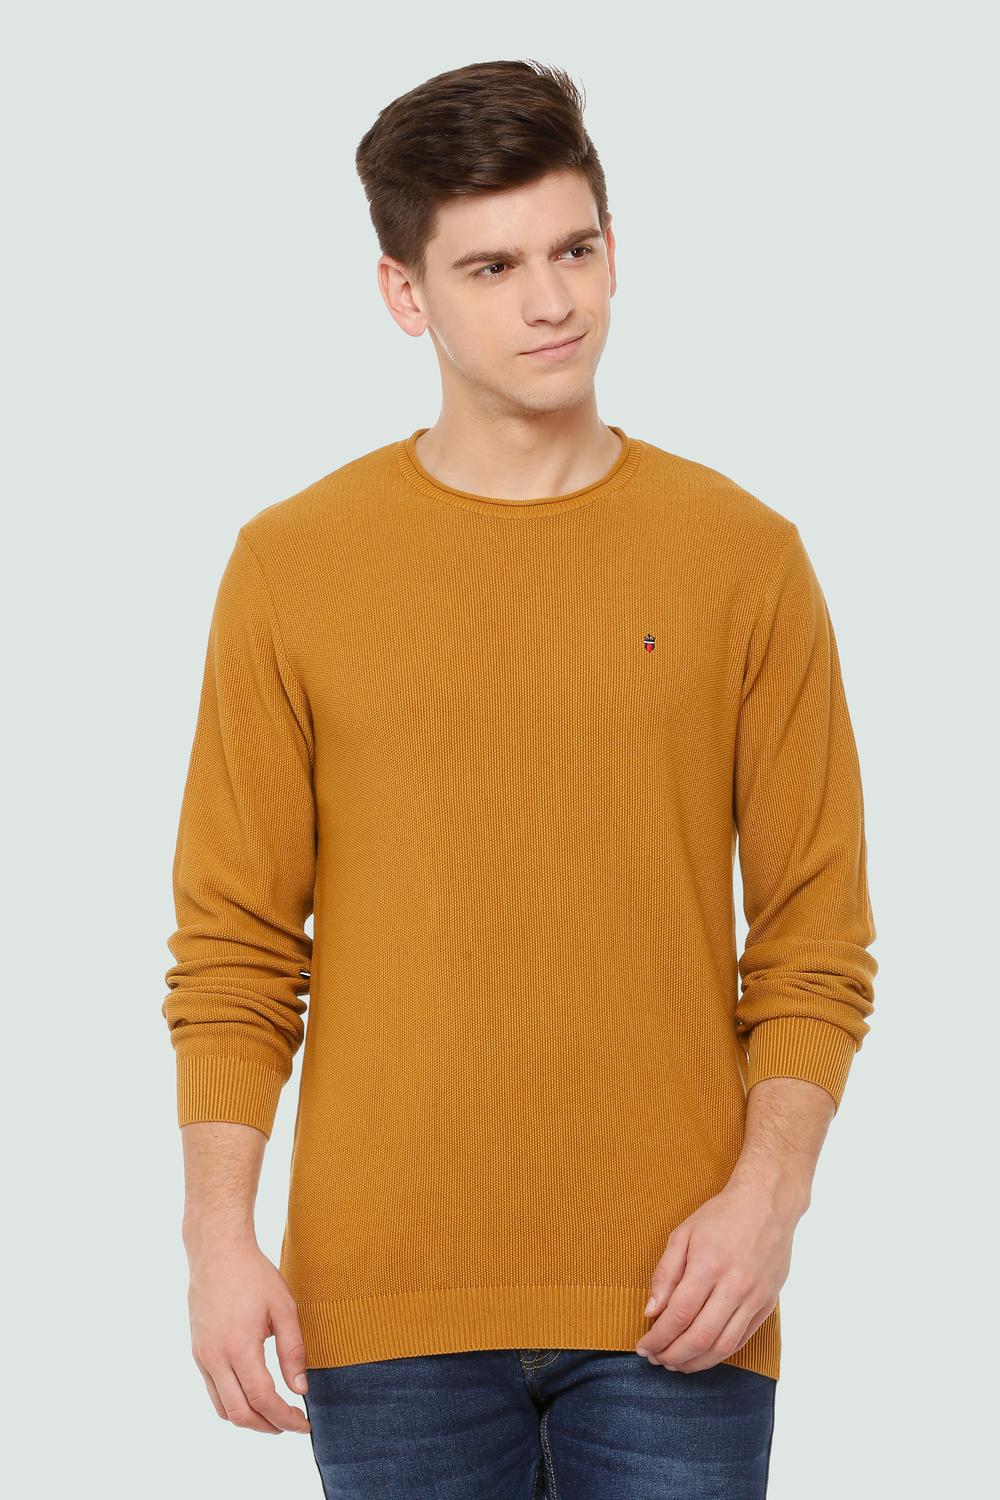 LP Jeans Sweaters, Louis Philippe Yellow Sweater for Men at  Louisphilippe.com